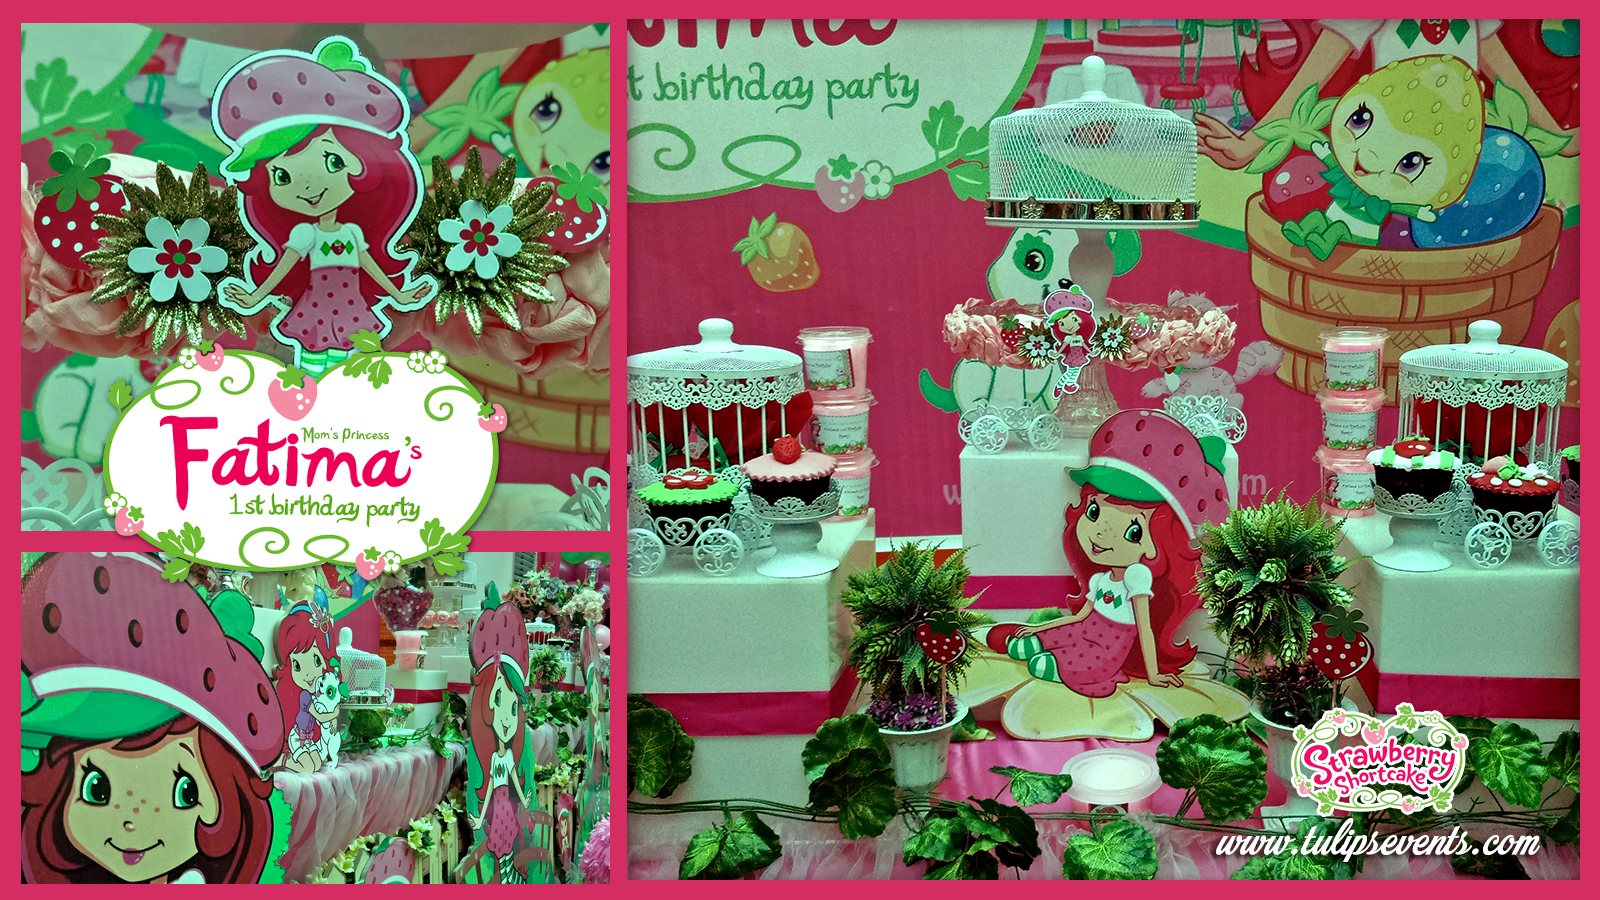 strawberry shortcake themed birthday party decor ideas in Pakistan 2